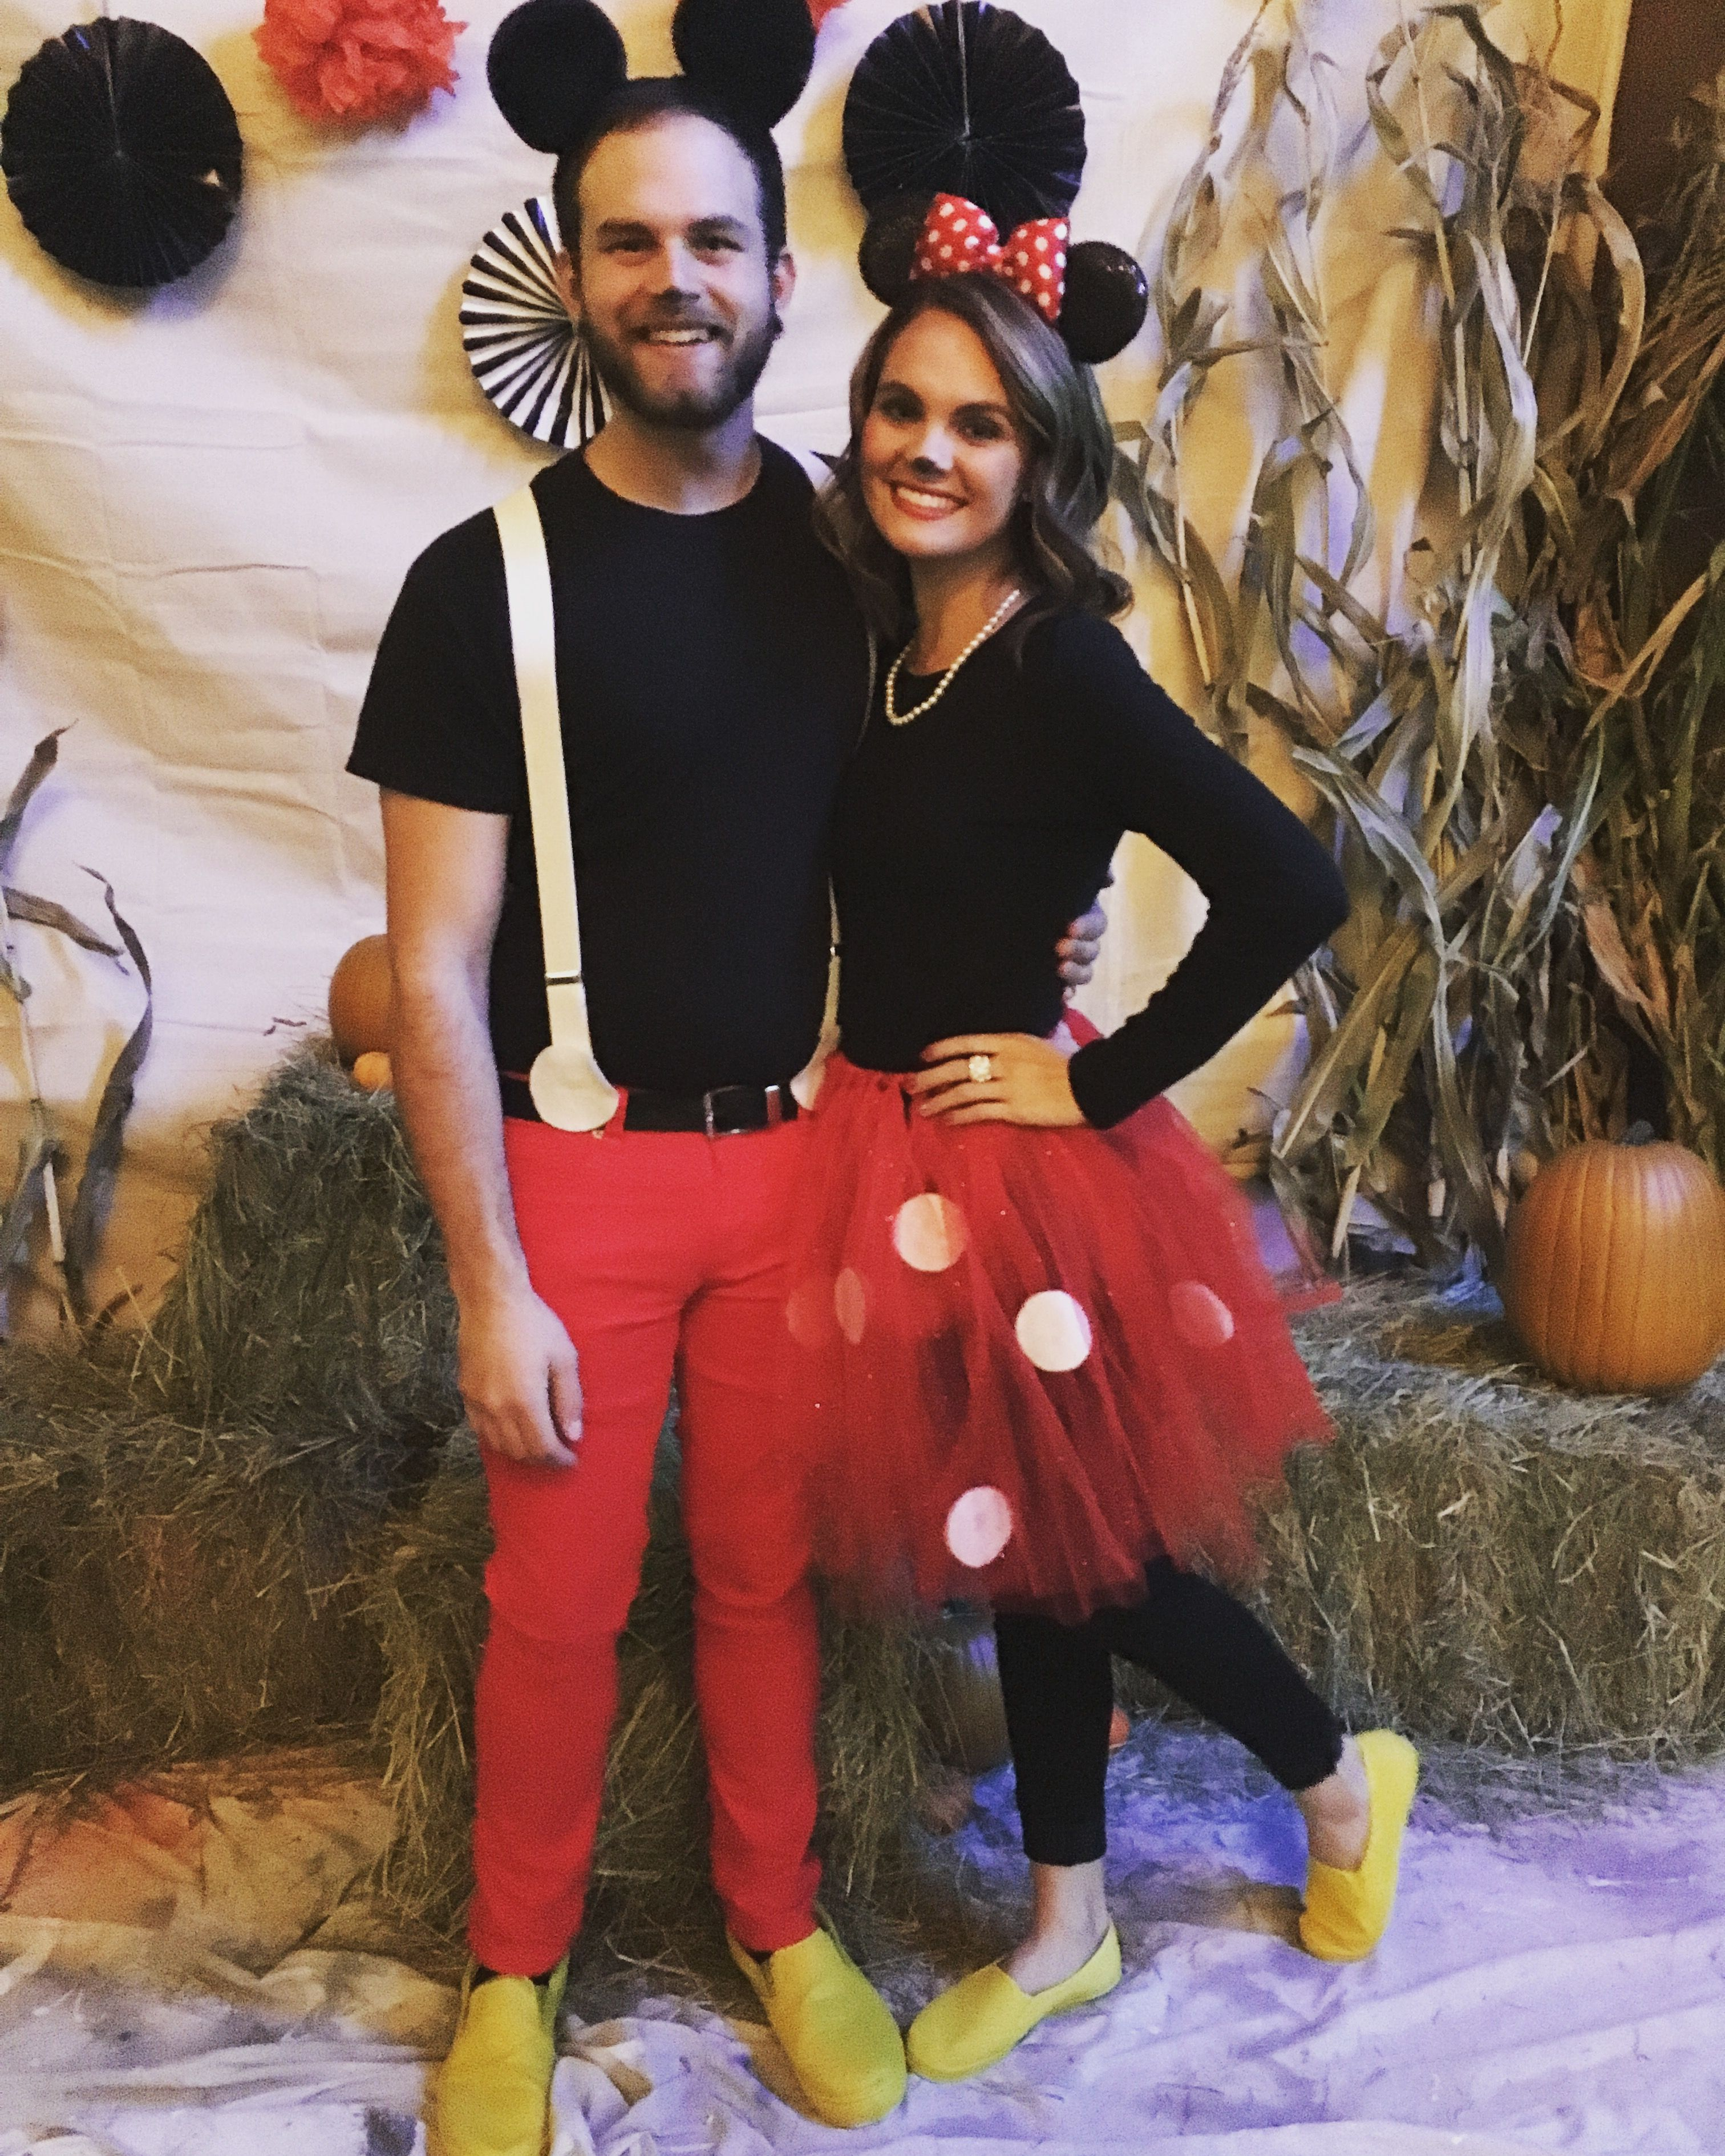 20 Best DIY Couples Halloween Costumes That Can Be Worn In